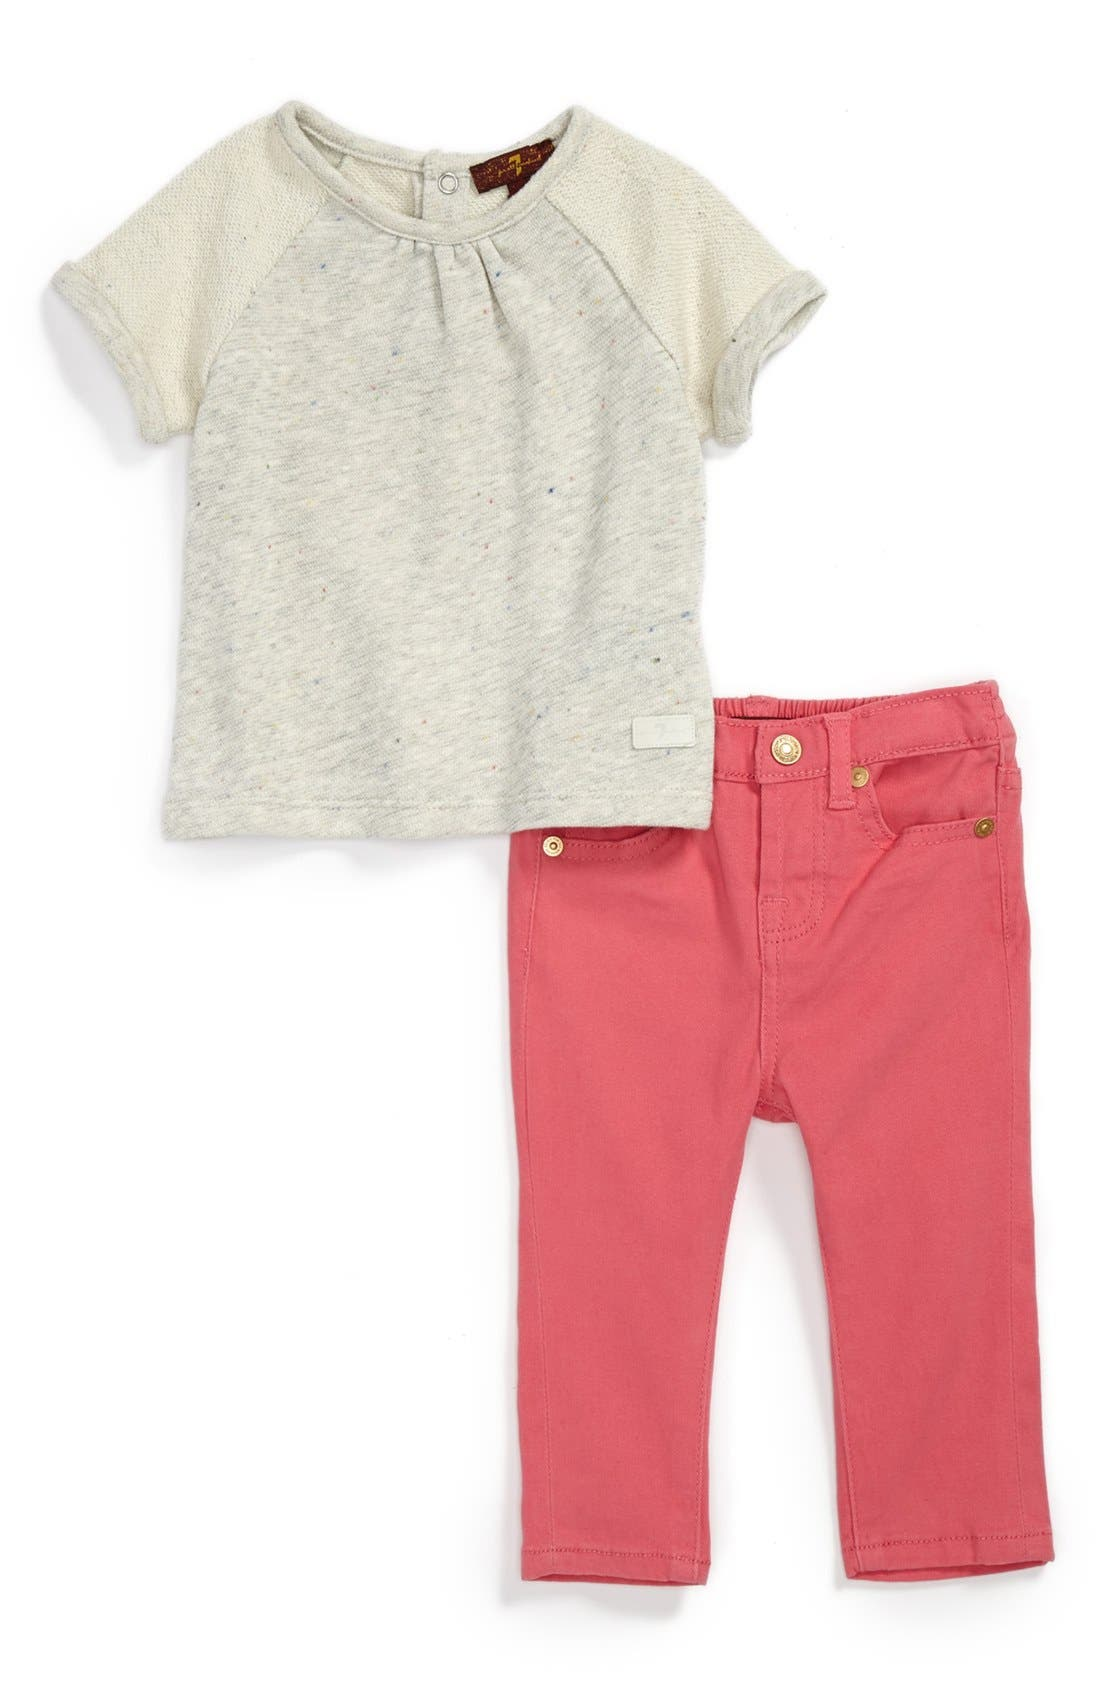 Main Image - 7 For All Mankind® Top & Skinny Jeans (Baby Girls)